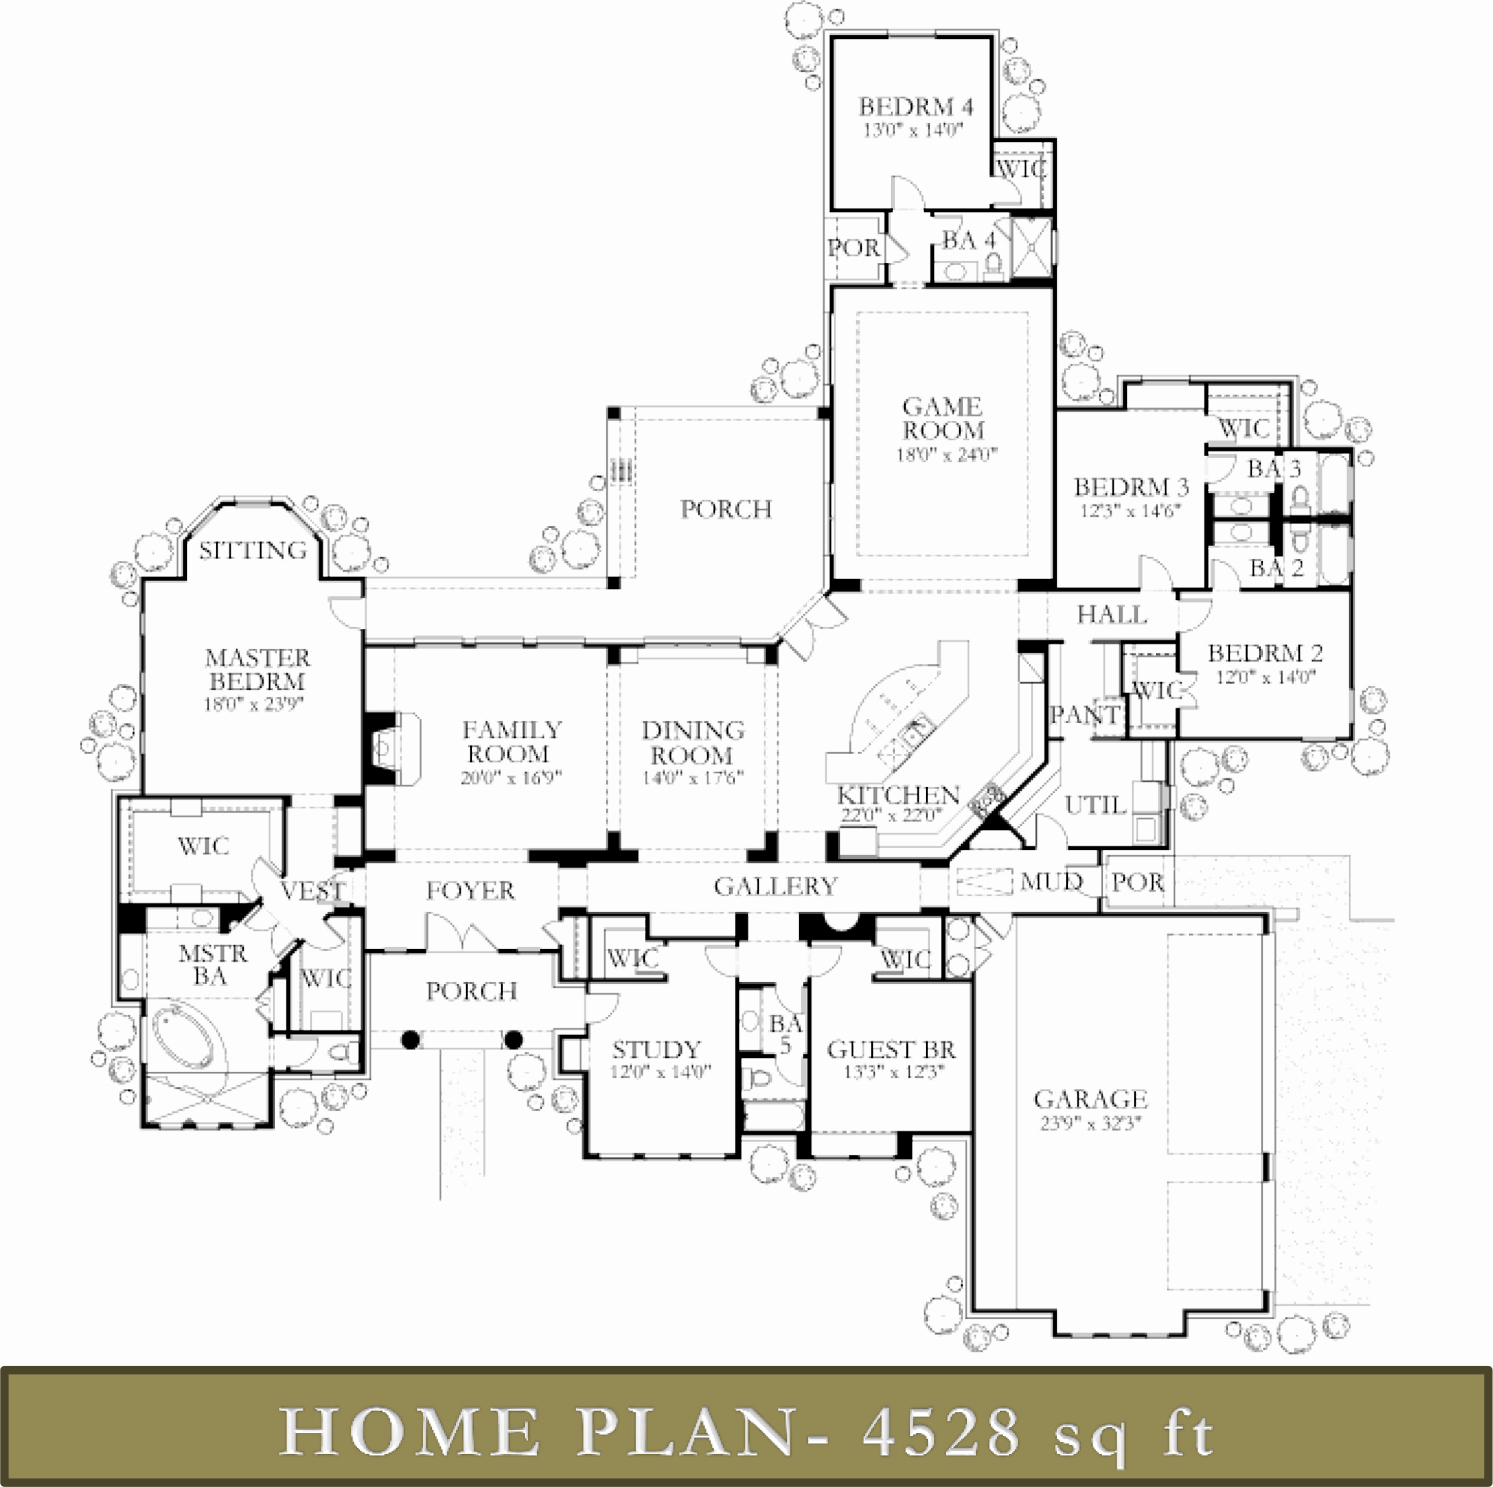 4500 5000 sq ft homes glazier homes for Floor plans for 5000 sq ft homes